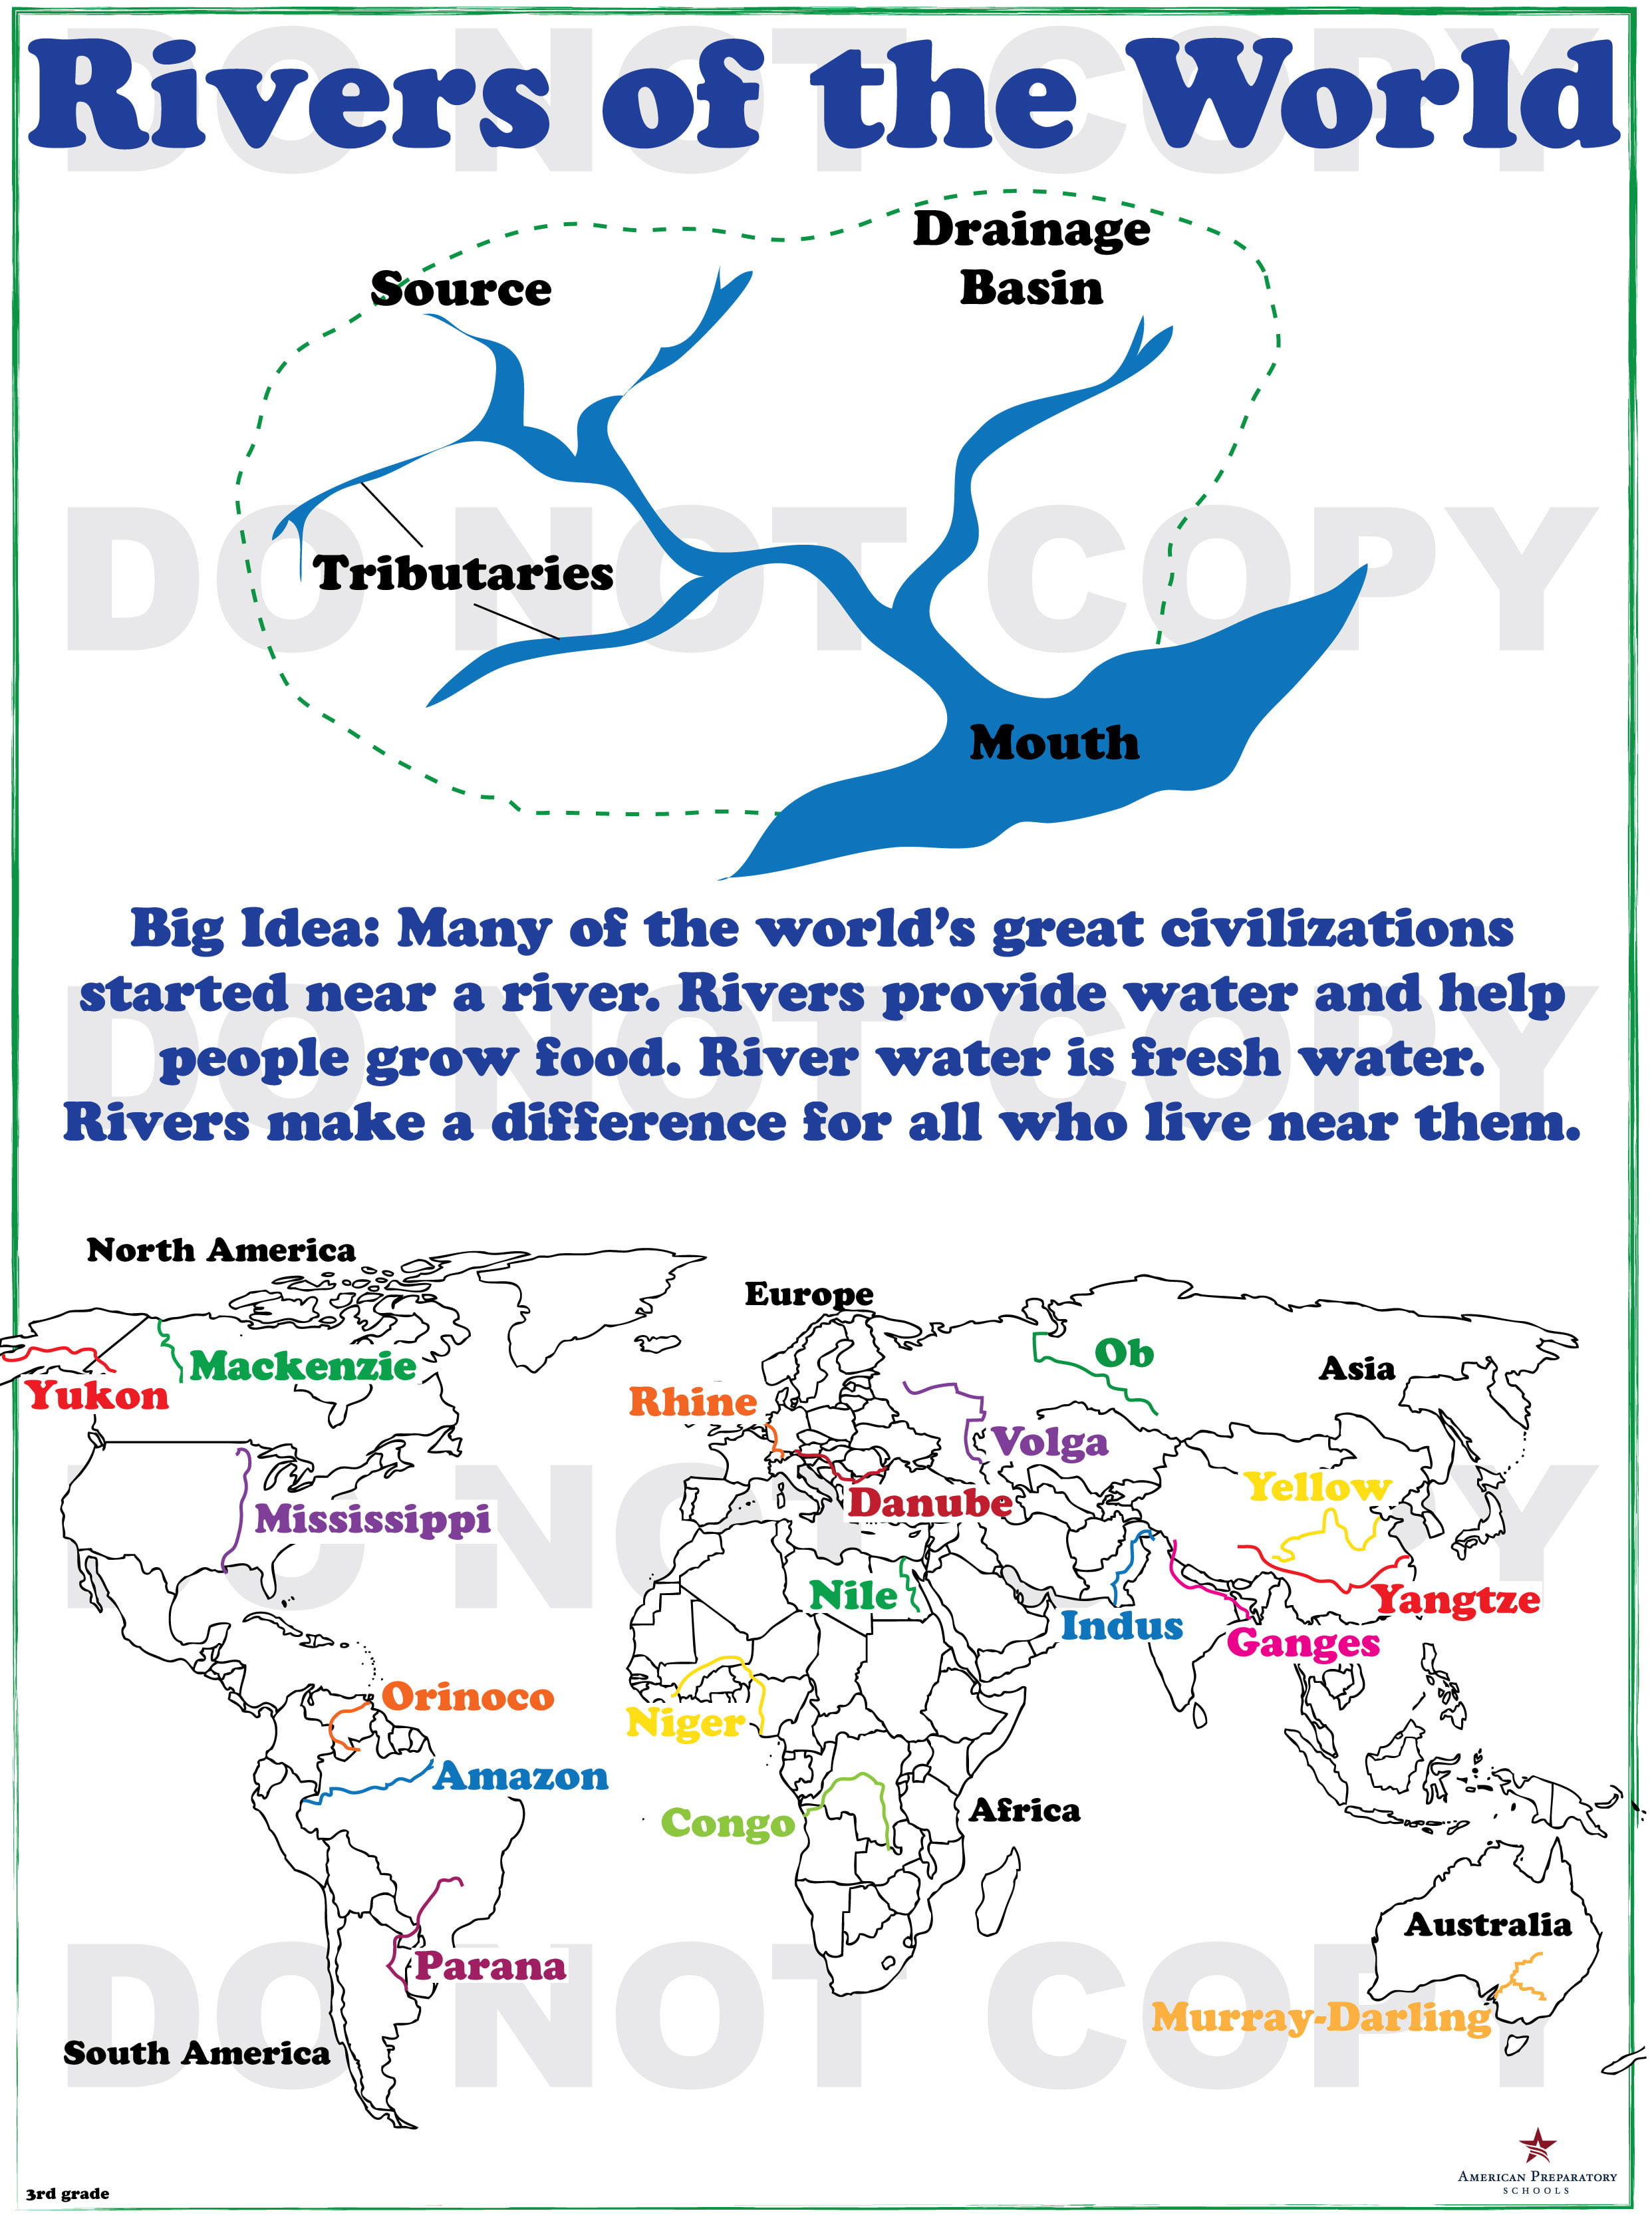 Rivers of the World 3rd Grade